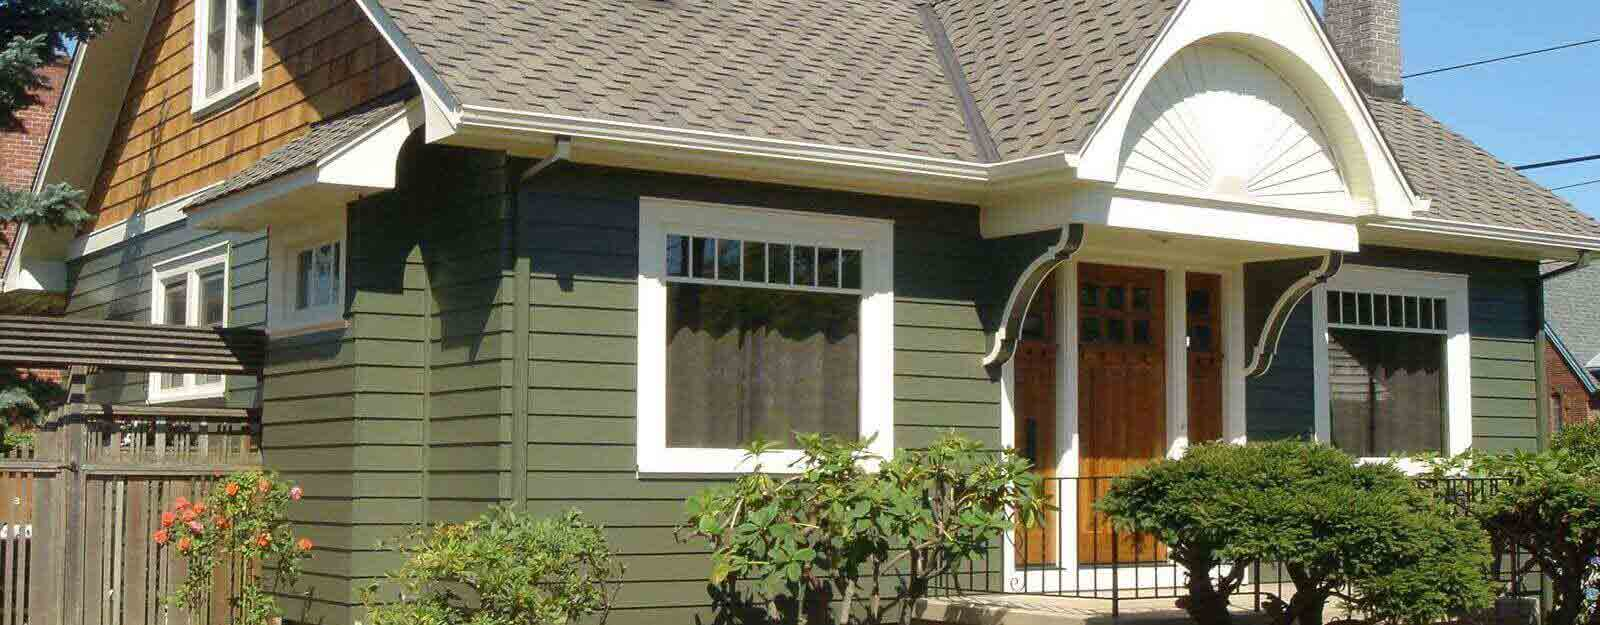 Siding Contractors Portland Roofing Contractors